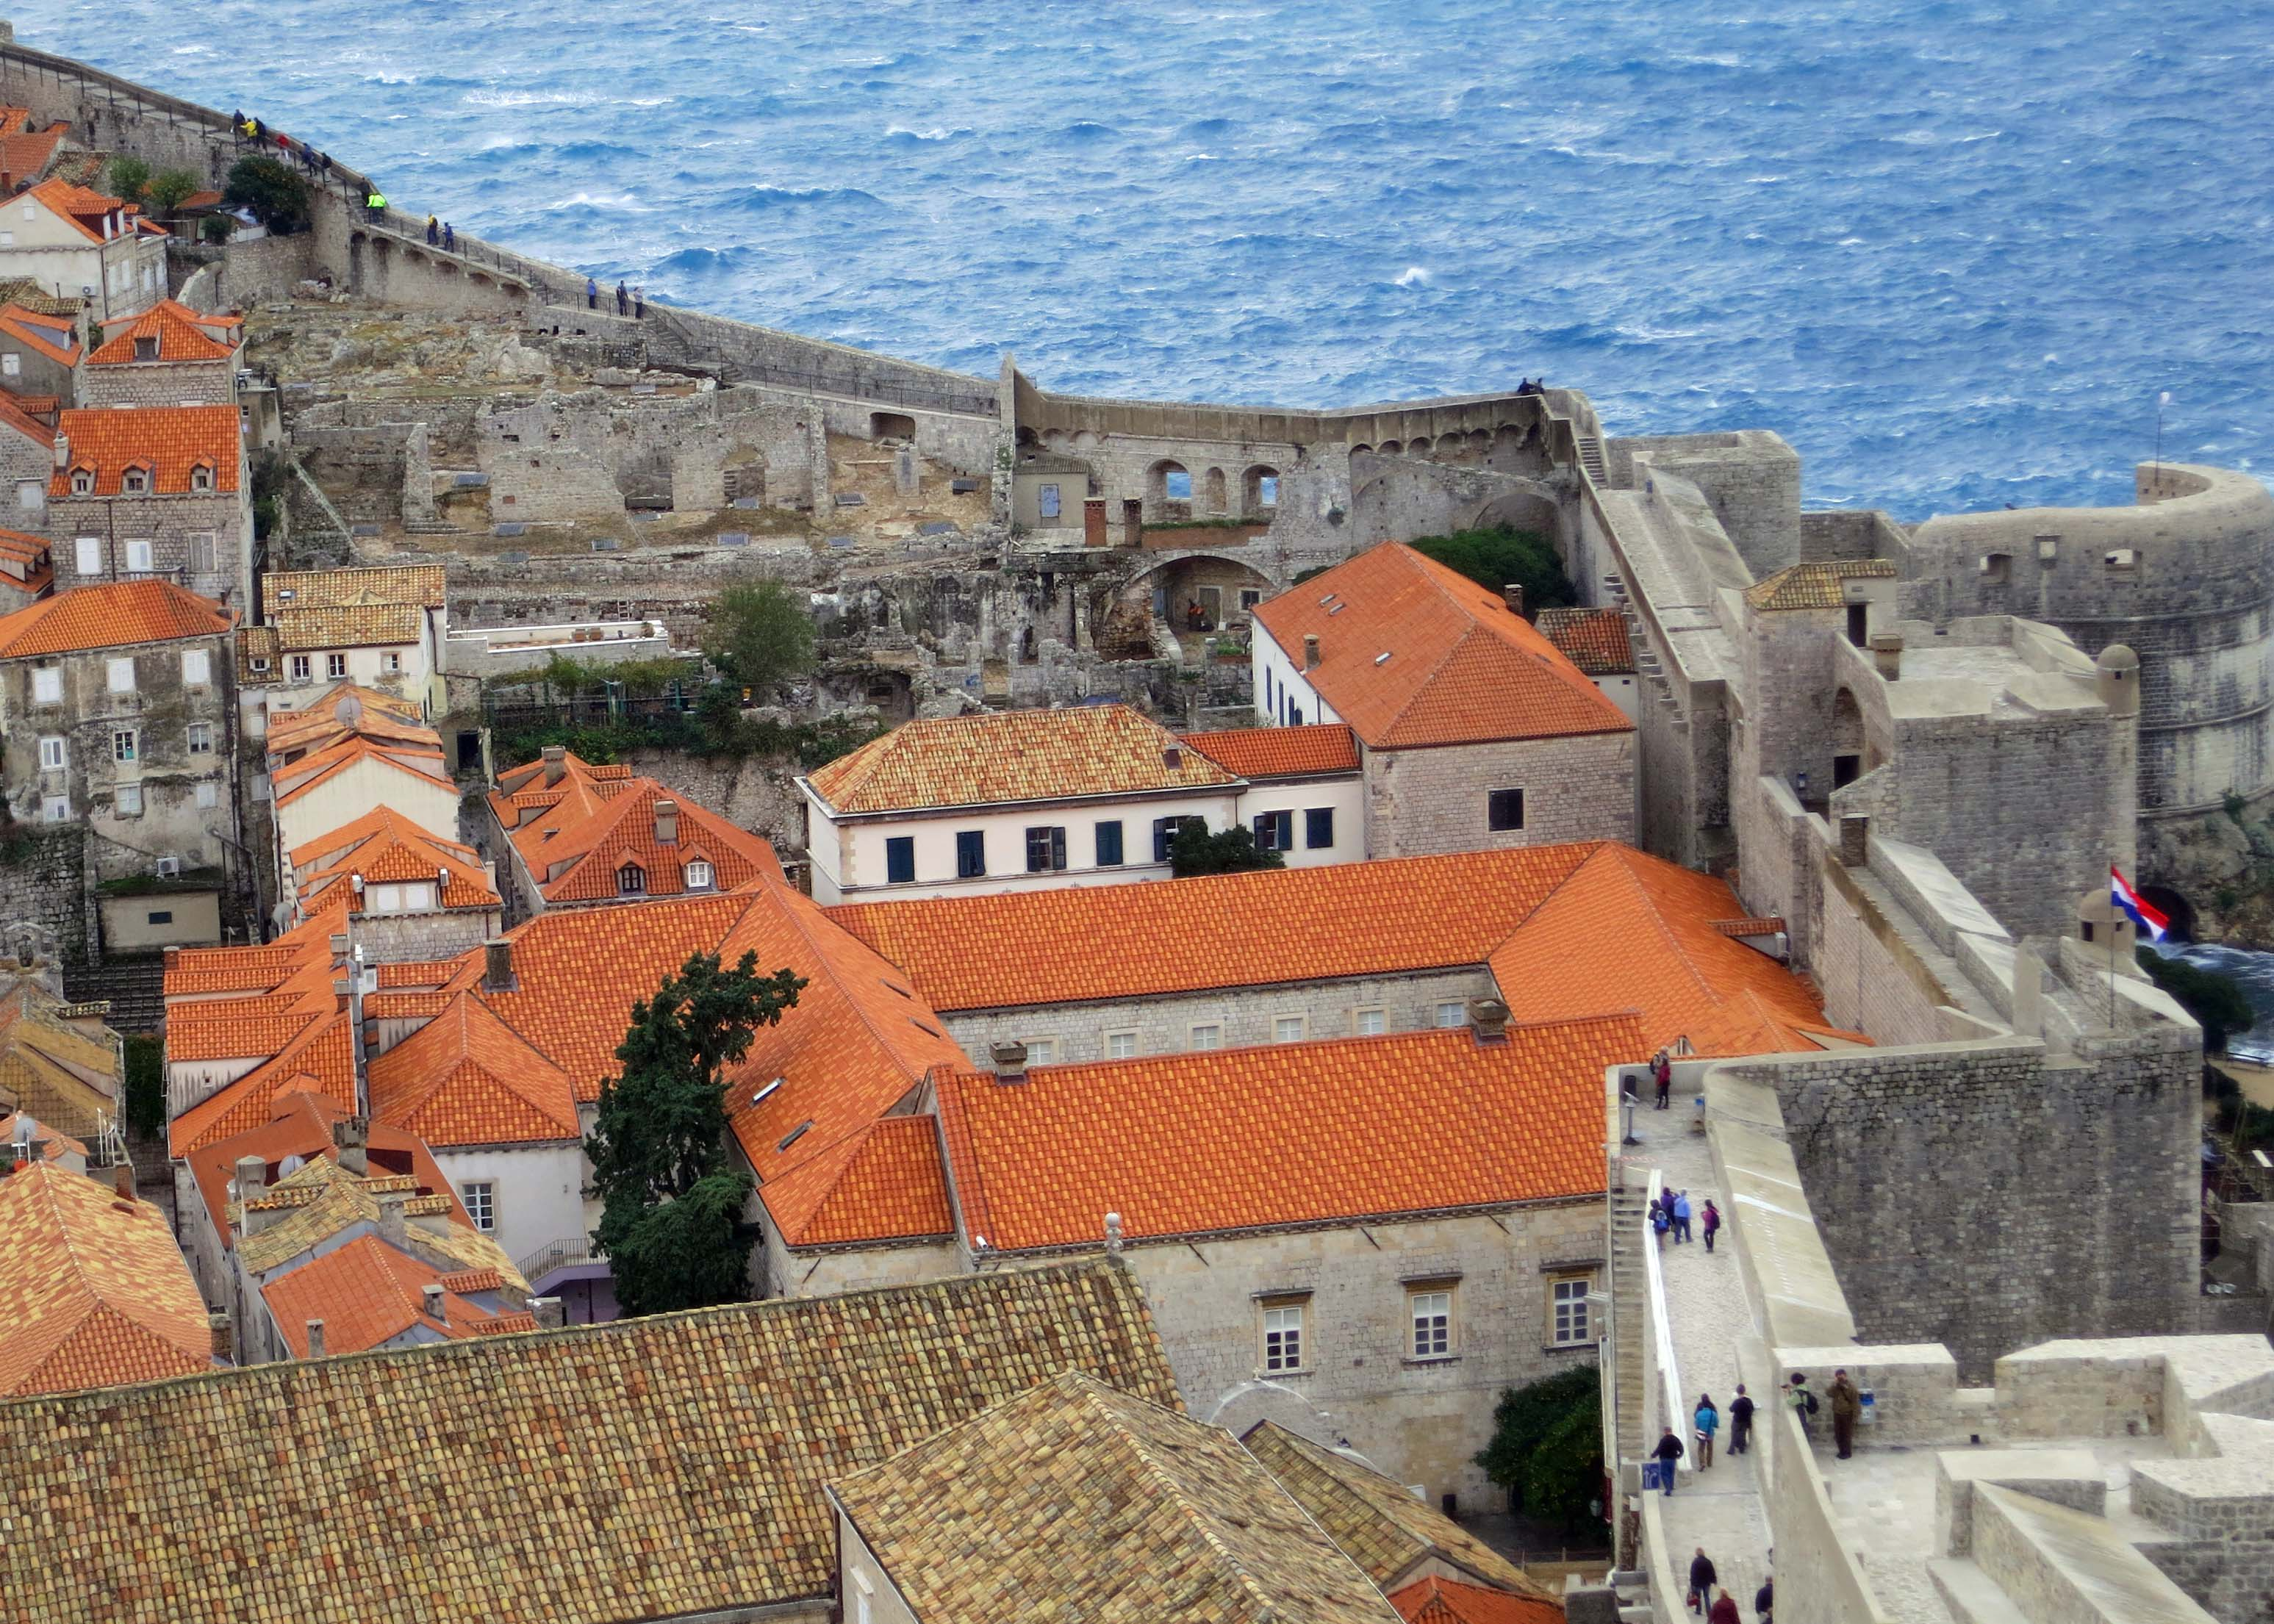 The walled city of Dubrovnik is known as the Pearl of the Adriatic. The walls around the city are listed as a World Heritage Site.